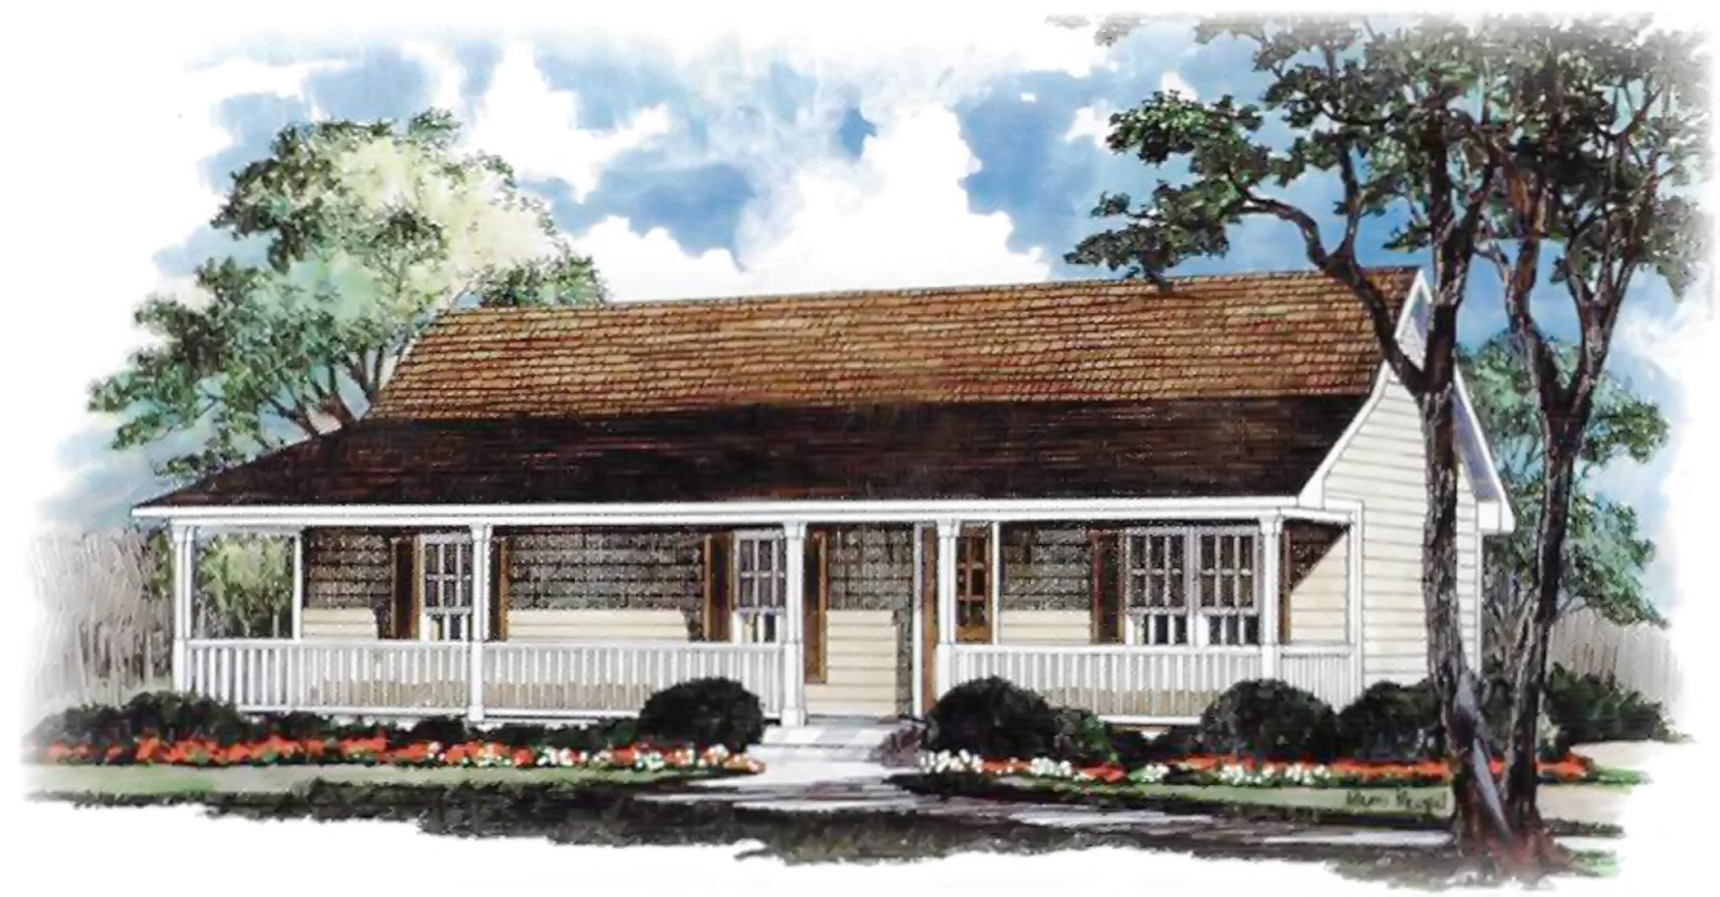 Farmview Pennyworth Homes Tallahassee Home Builder